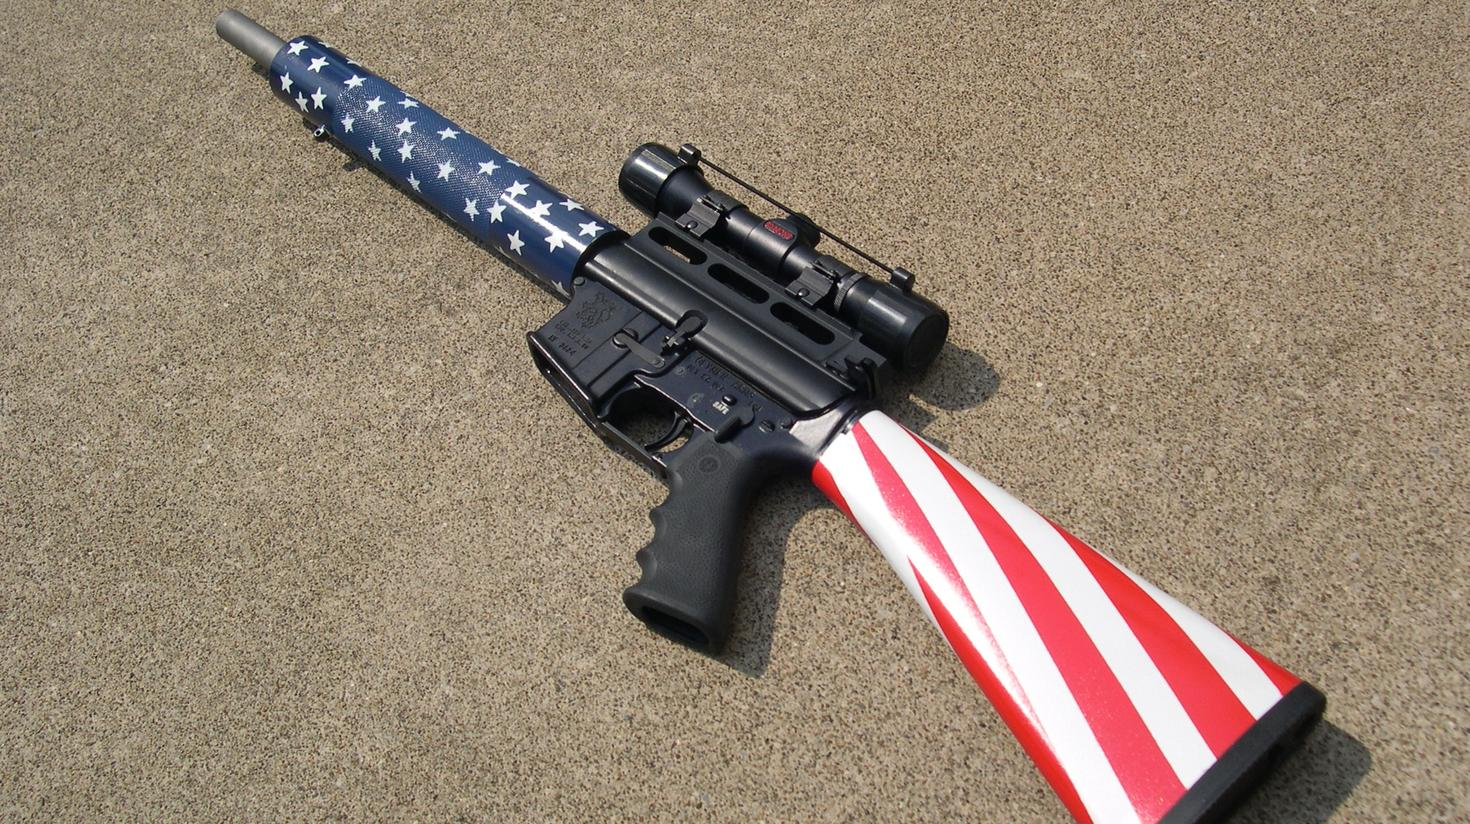 bring back the assault weapon ban Assault weapons used to be banned they should be banned again in light of senator dianne feinstein's new bill to ban assault weapons, it is worth visiting this trope to understand just how amorphous, banal, and useless such a ban would be.